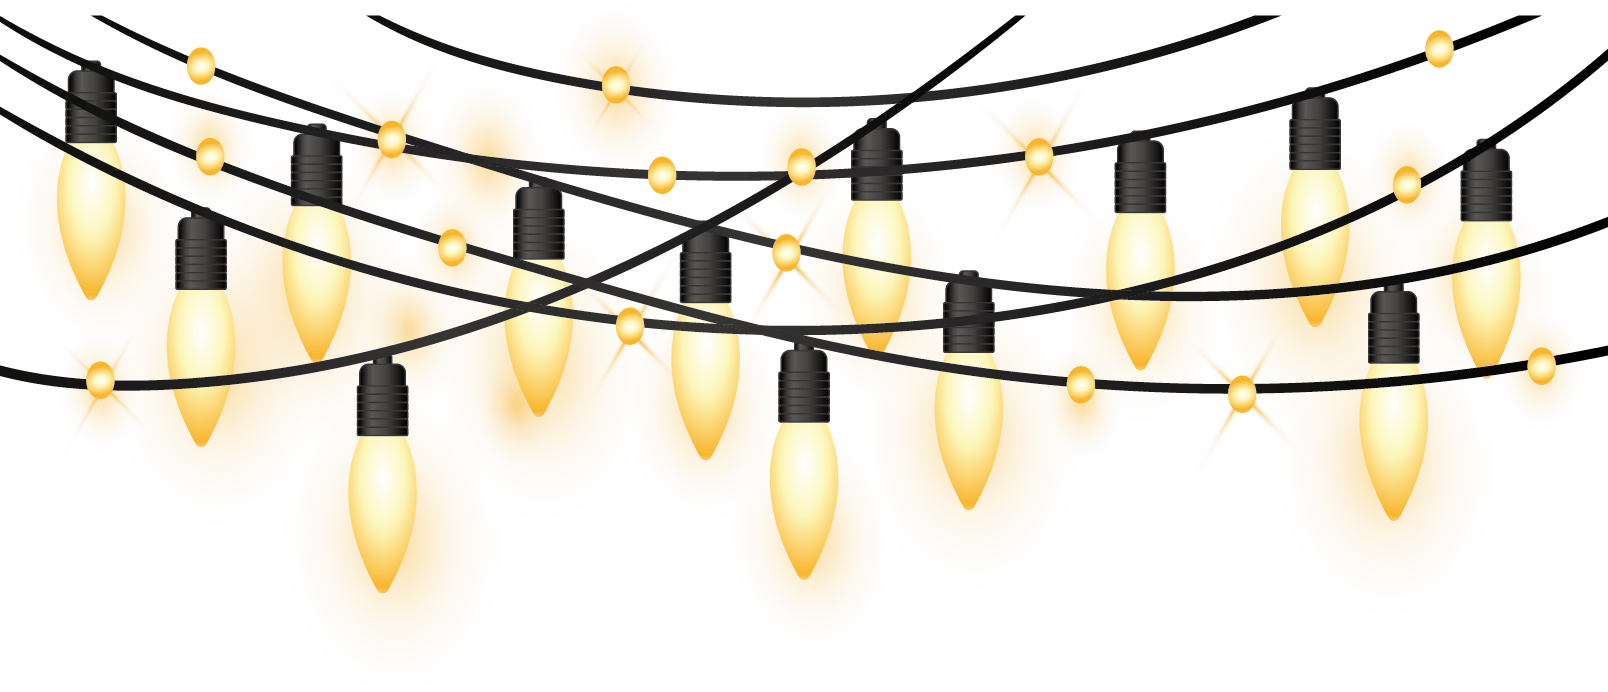 Christmas light string clipart picture freeuse library Christmas lights Clip art - Yellow light effect decorative holiday ... picture freeuse library